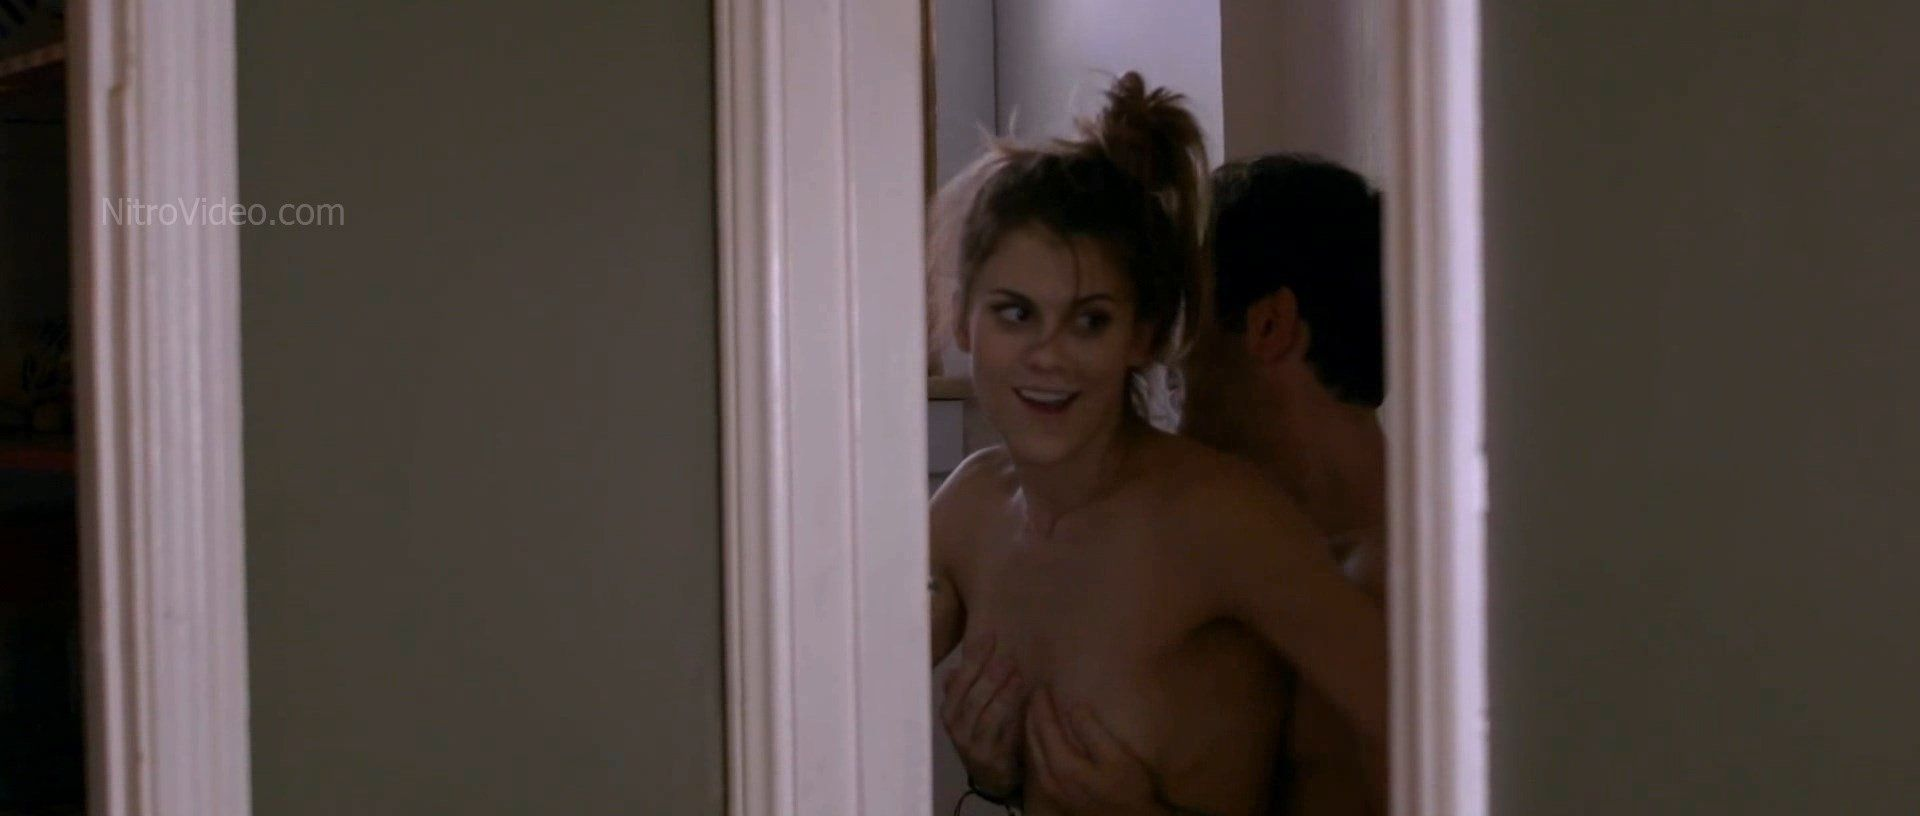 Nude lindsey shaw everything, that theme